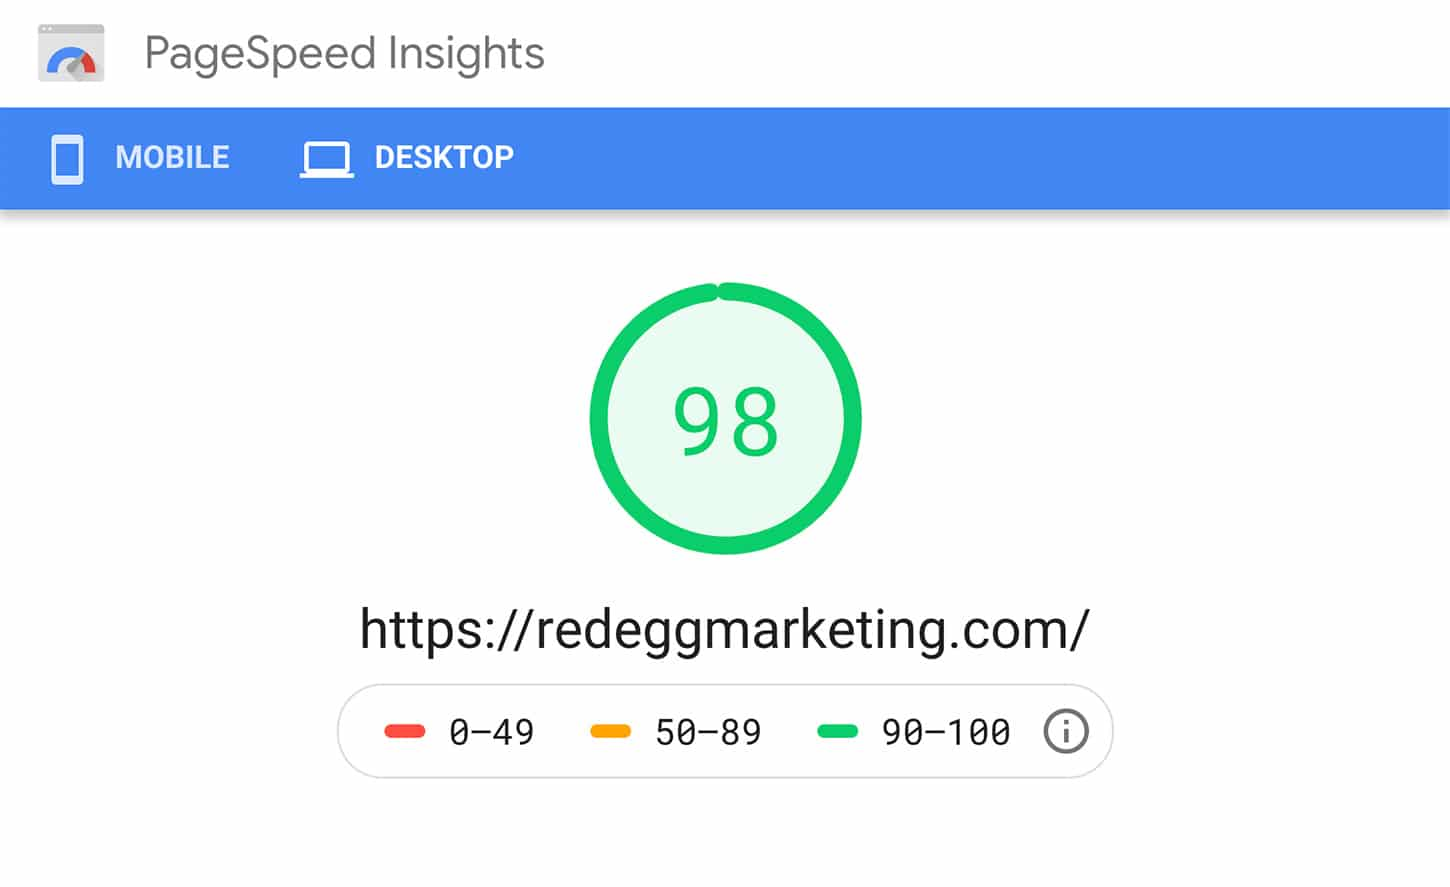 Google Page Speed Insights score of 98 for redeggmarketing.com